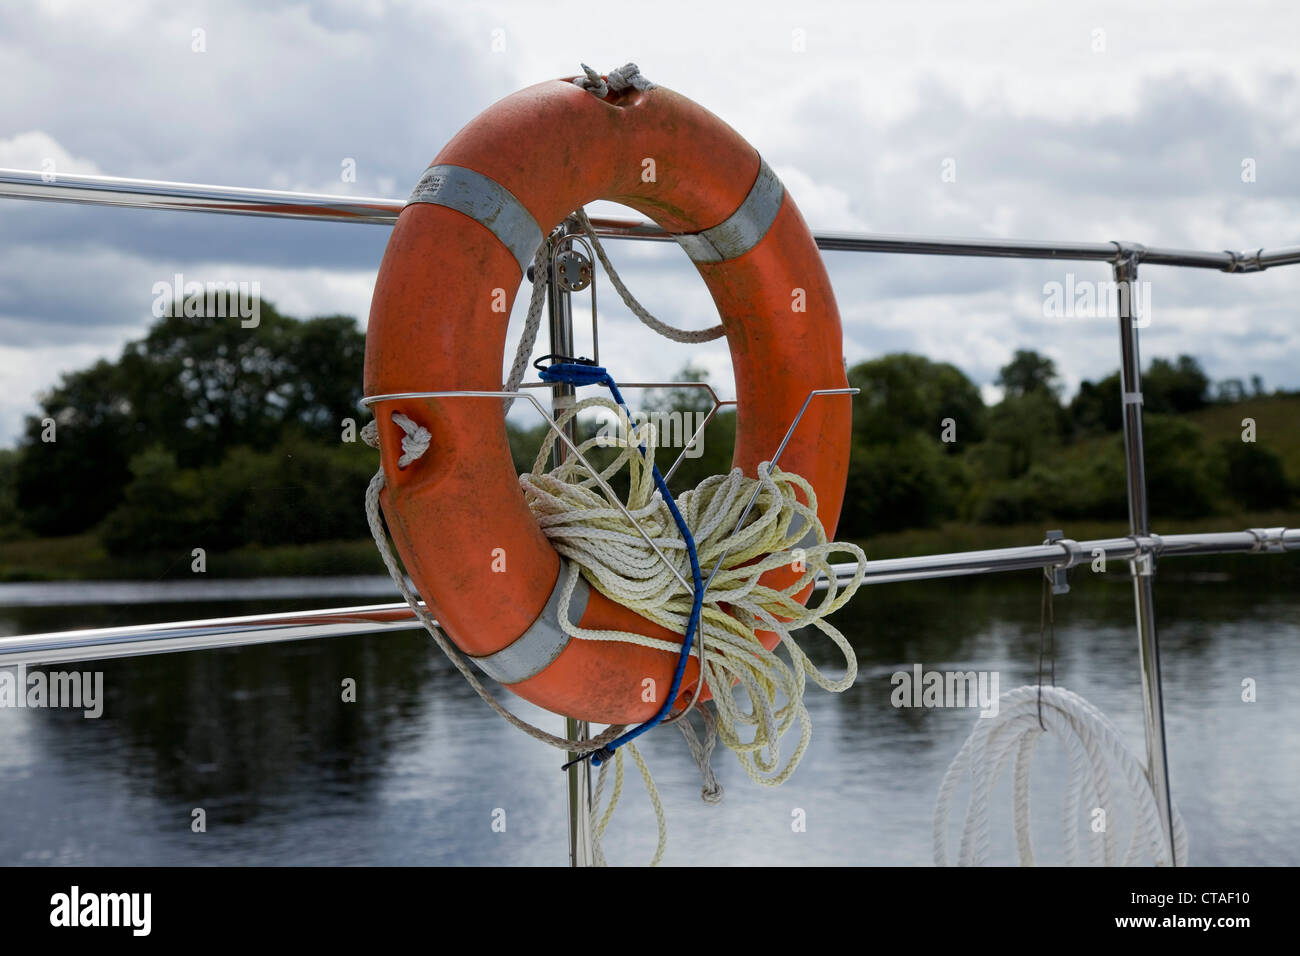 View of a lifebelt at the rear of a boat - Stock Image